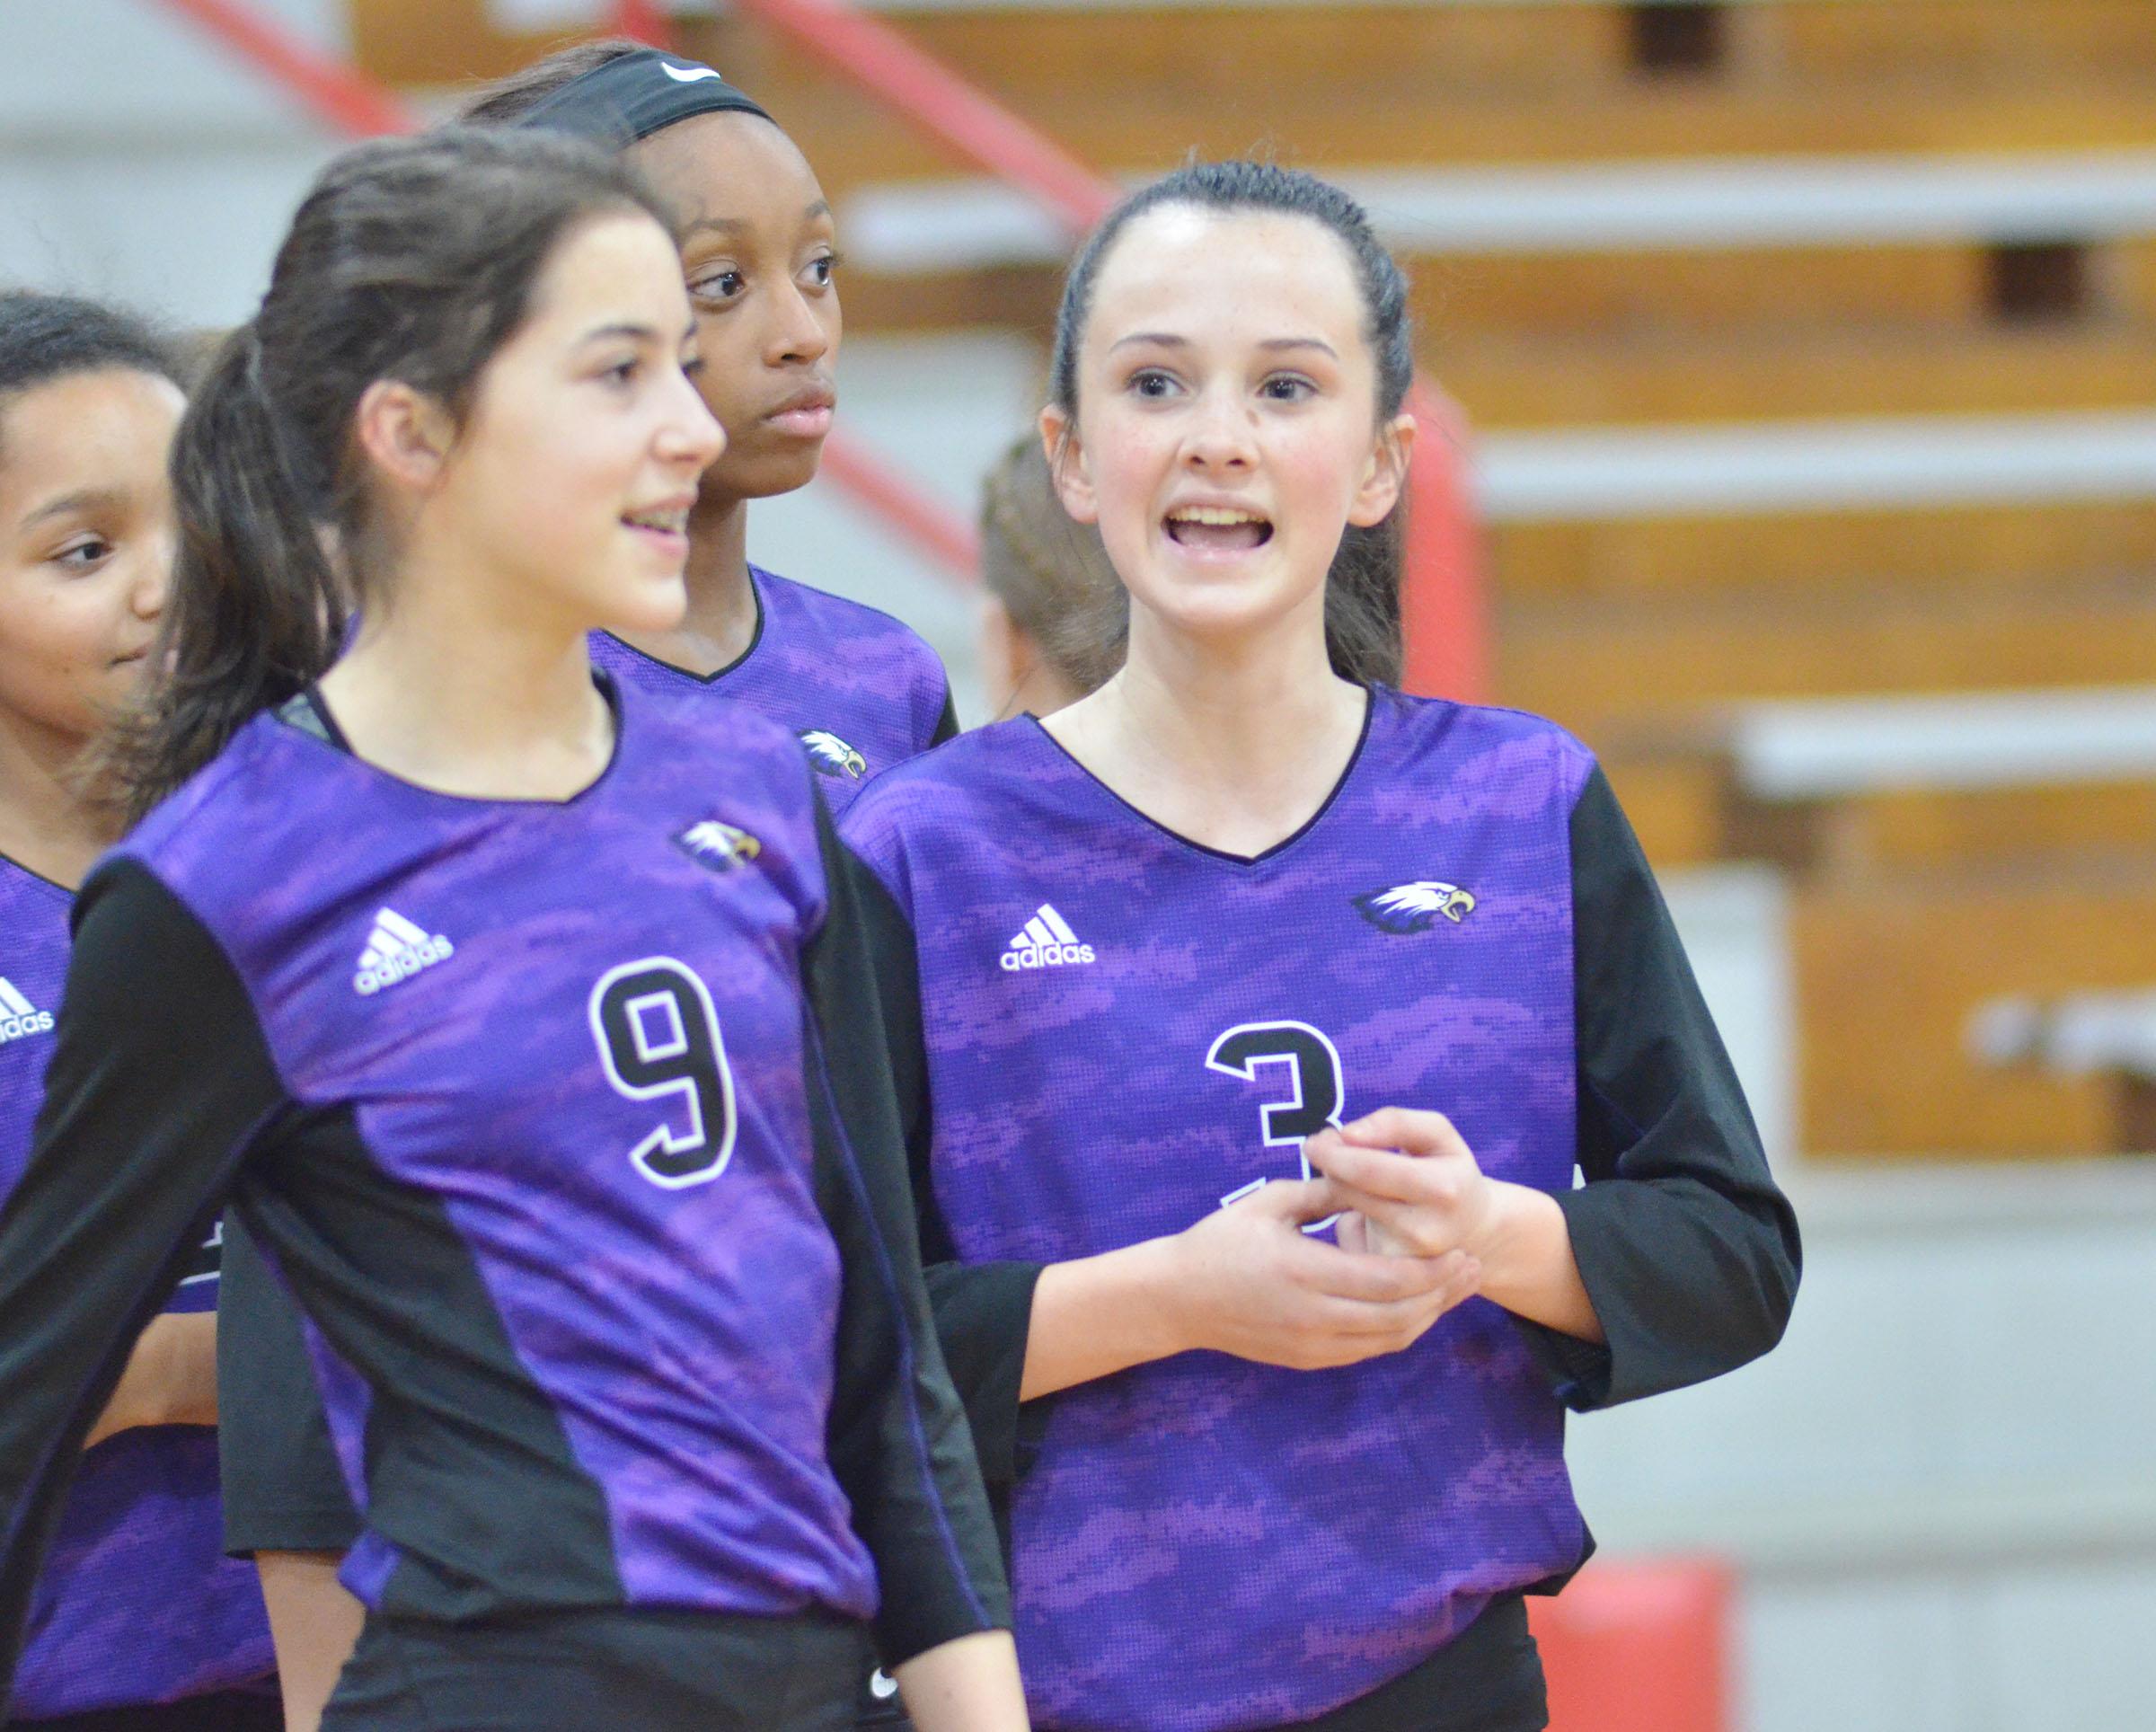 CMS seventh-grader Sarah Adkins talks to her teammates before the match.